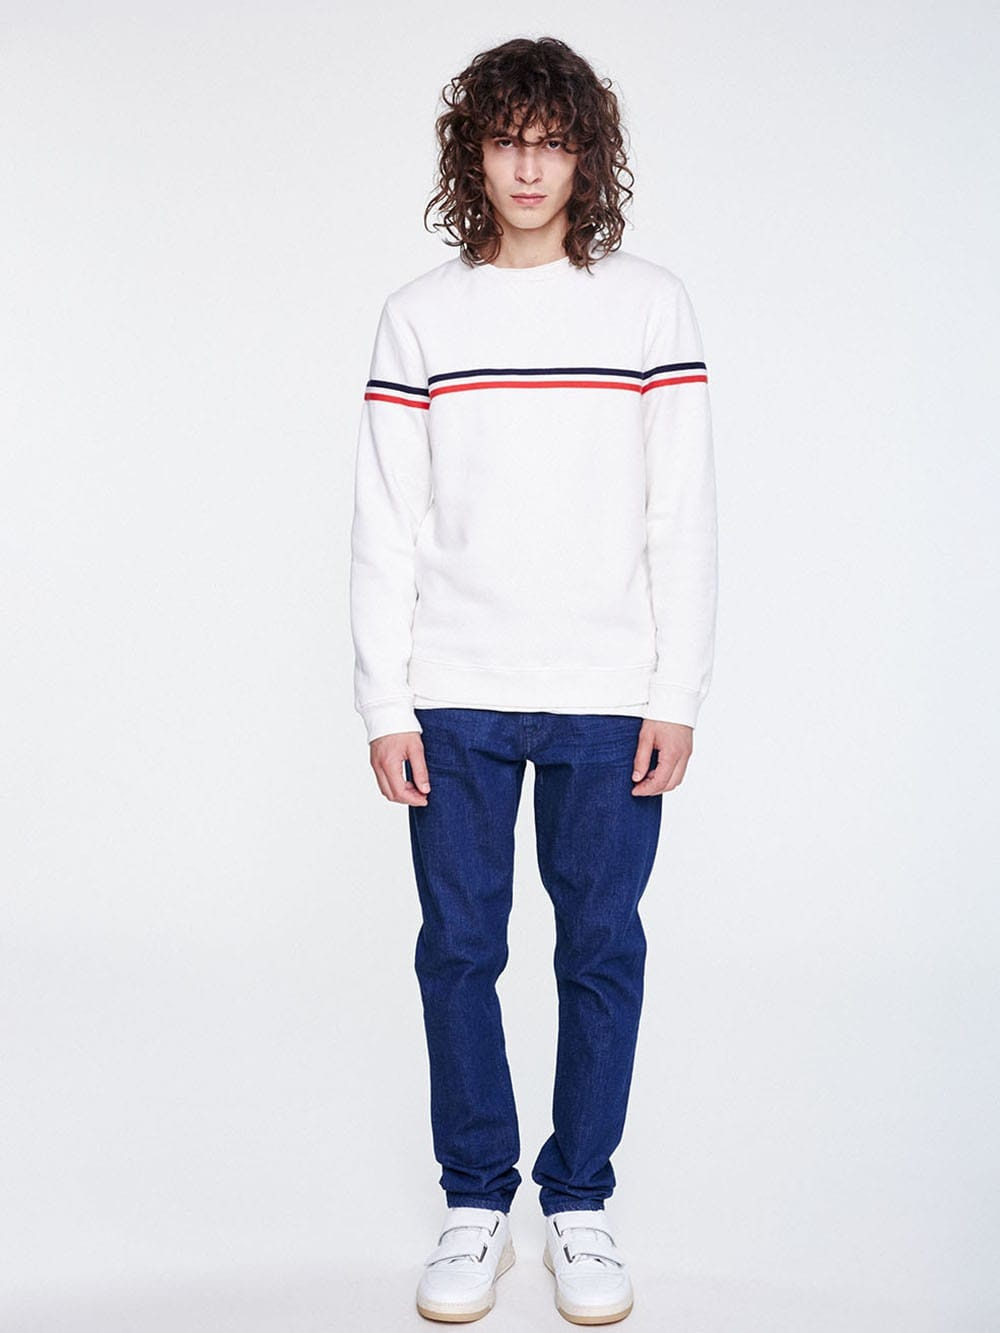 White sweater with red and white stripes made of organic cotton stripes-Sono